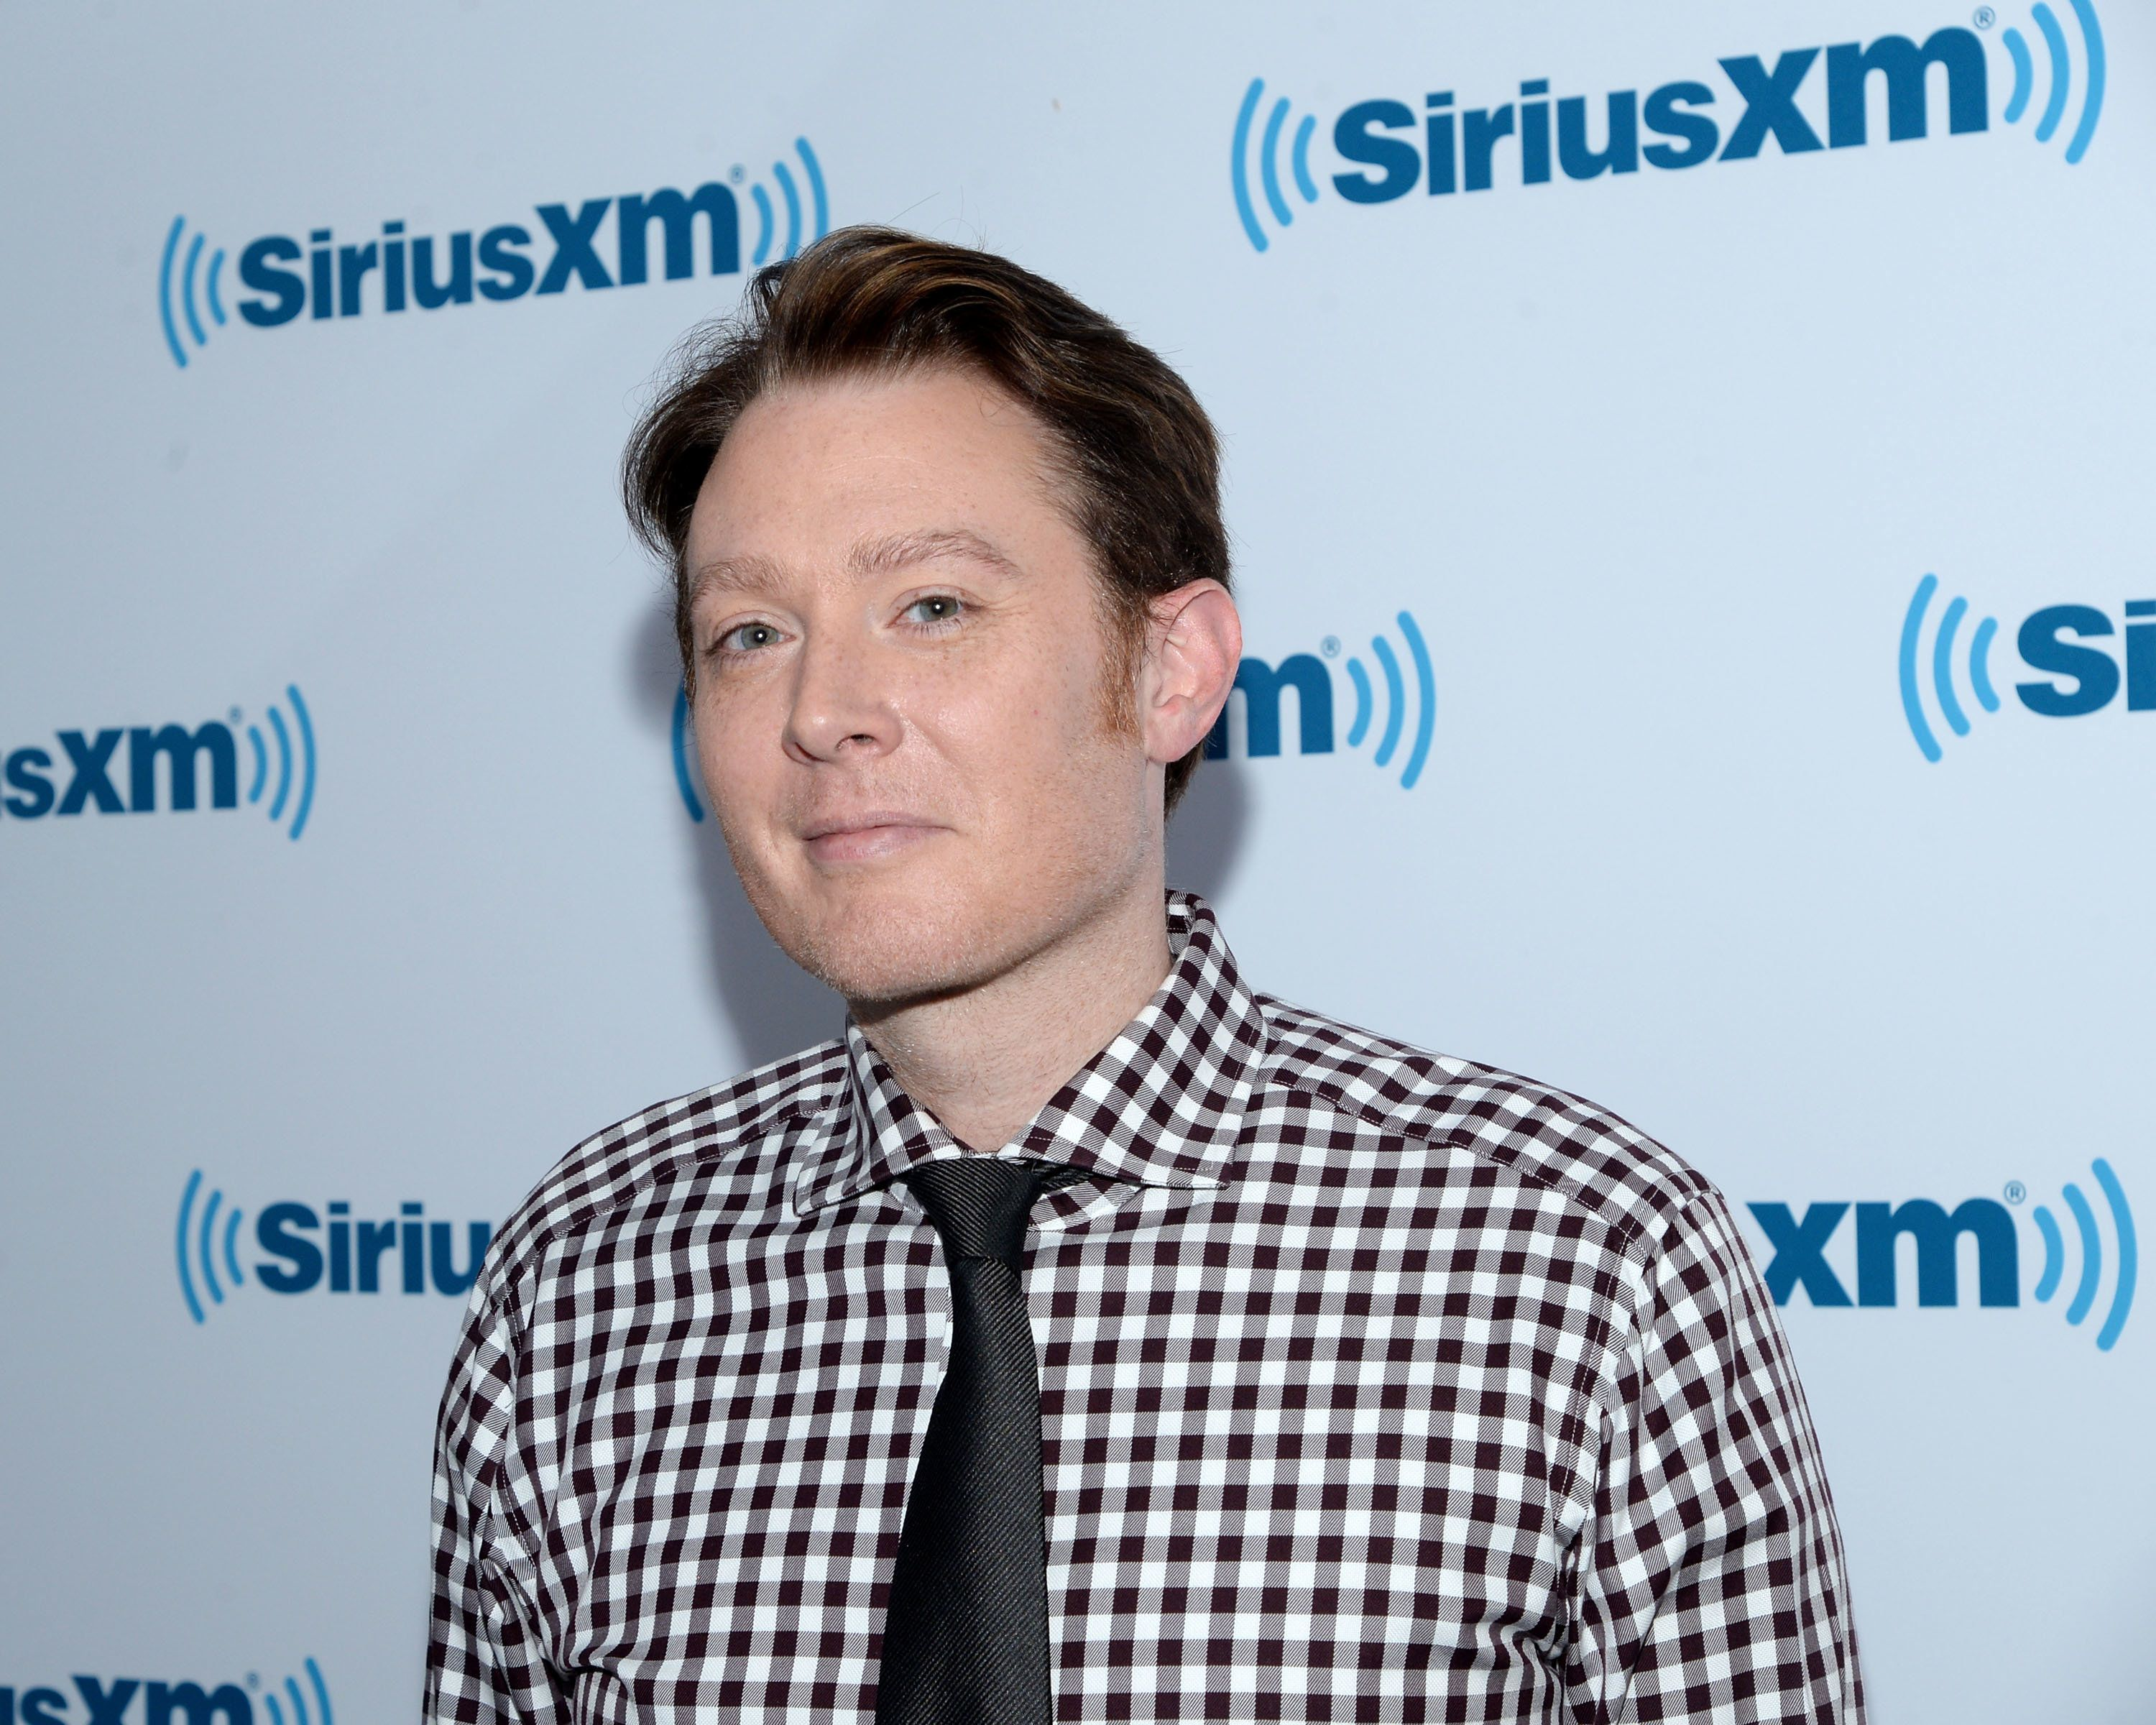 NEW YORK, NY - APRIL 06:  Singer/songwriter Clay Aiken visits at SiriusXM Studios on April 6, 2015 in New York City.  (Photo by Ben Gabbe/Getty Images)